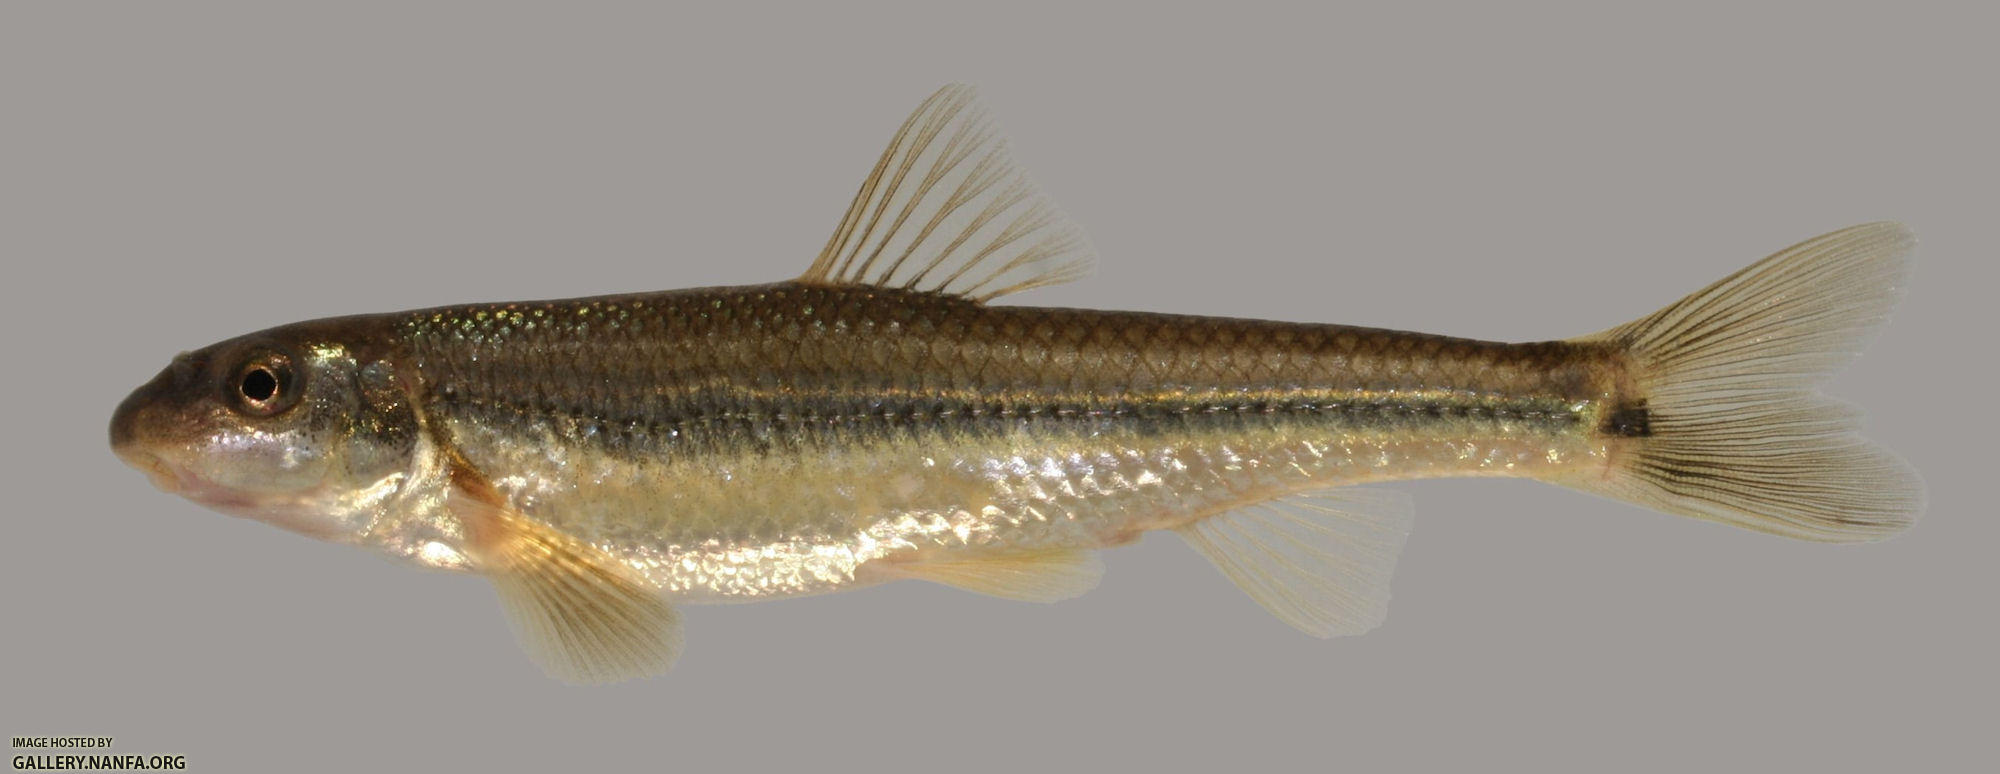 Phenacobius mirabilis Suckermouth Minnow 2000